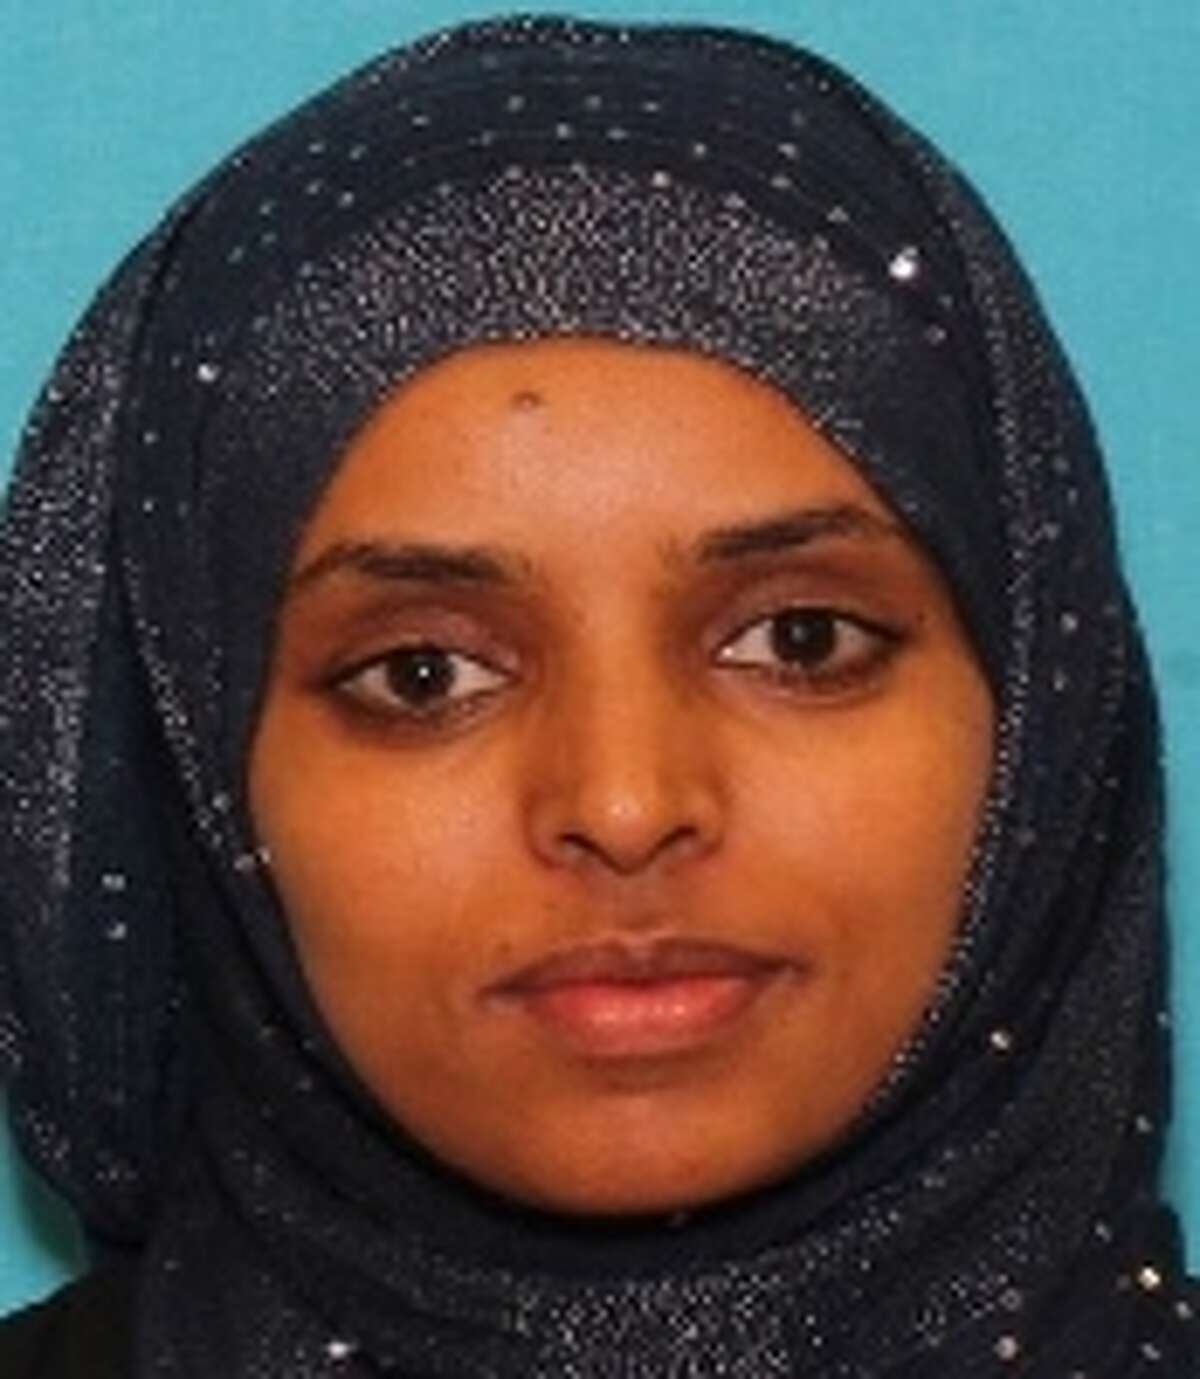 Police released this photograph of Sofya Ali, 33, who was apparently shot and killed by her husband Tuesday, Oct. 11, 2016.. Courtesy Fort Bend County Sheriff's Office